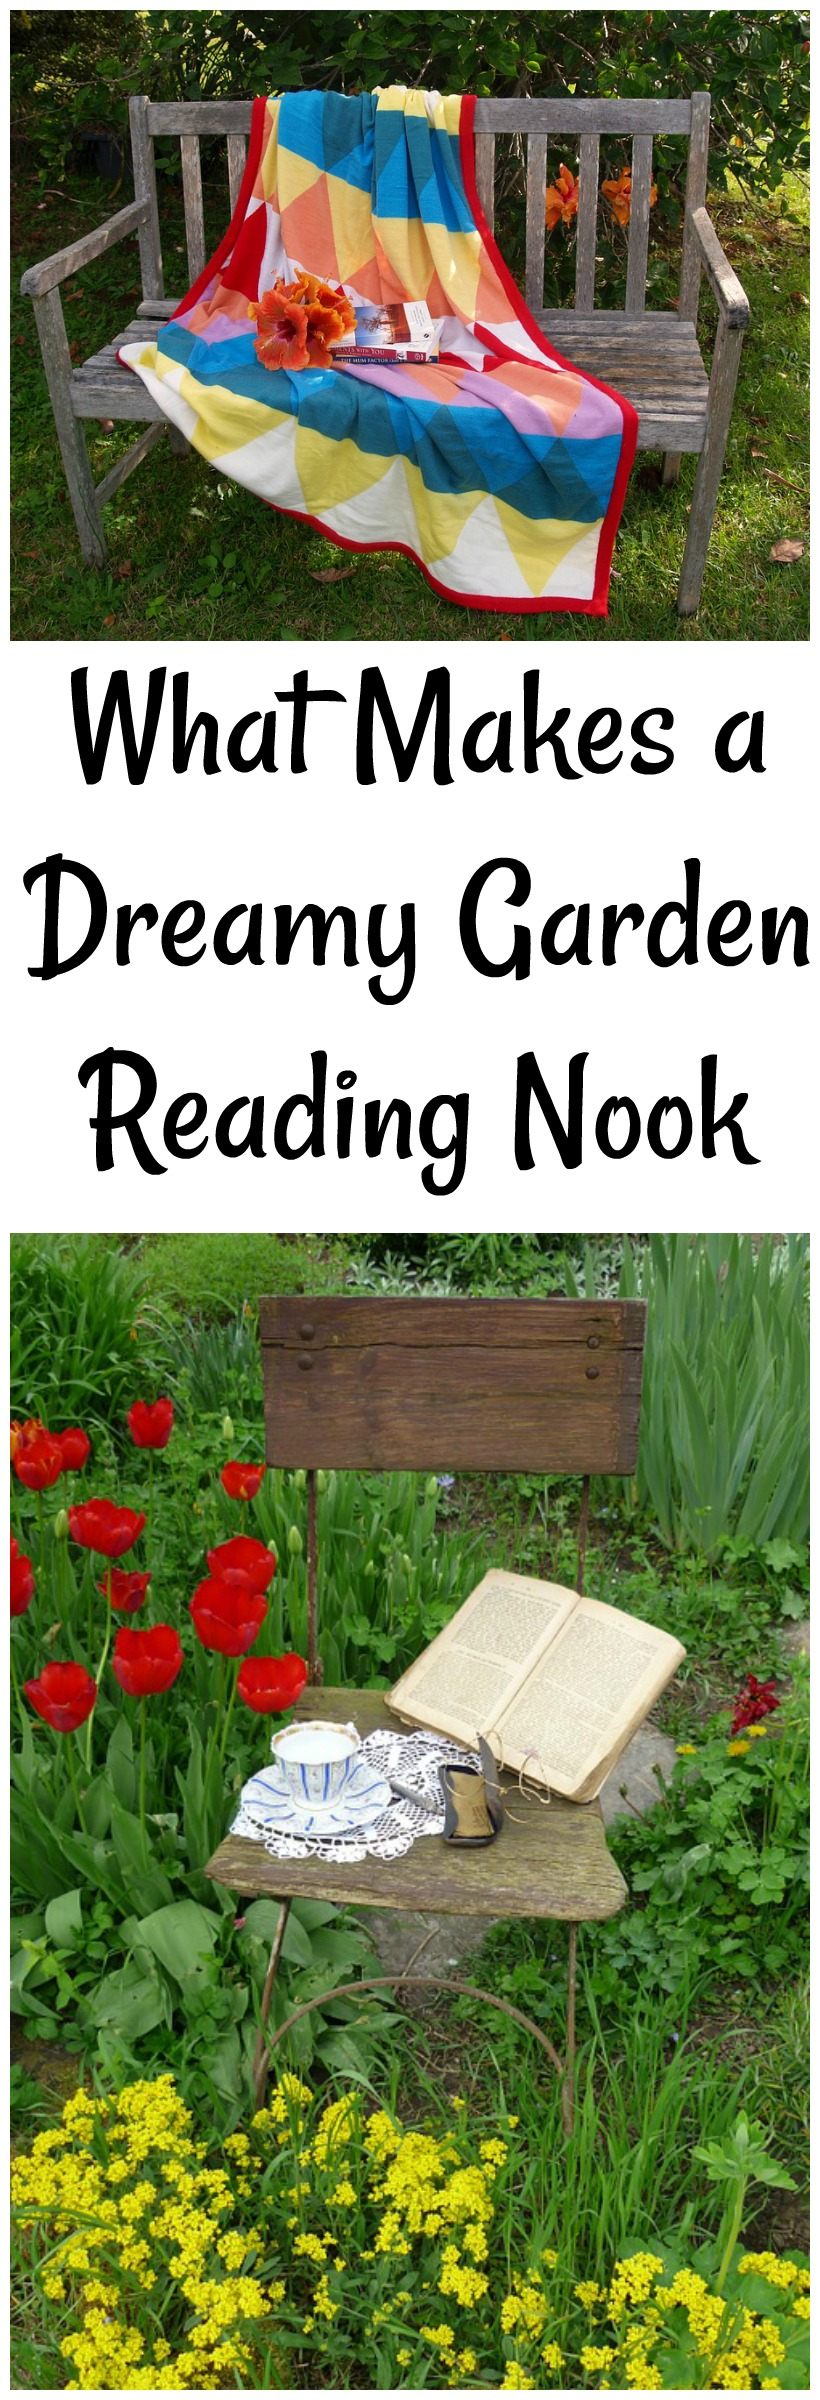 What Makes a Dreamy Garden Reading Nook